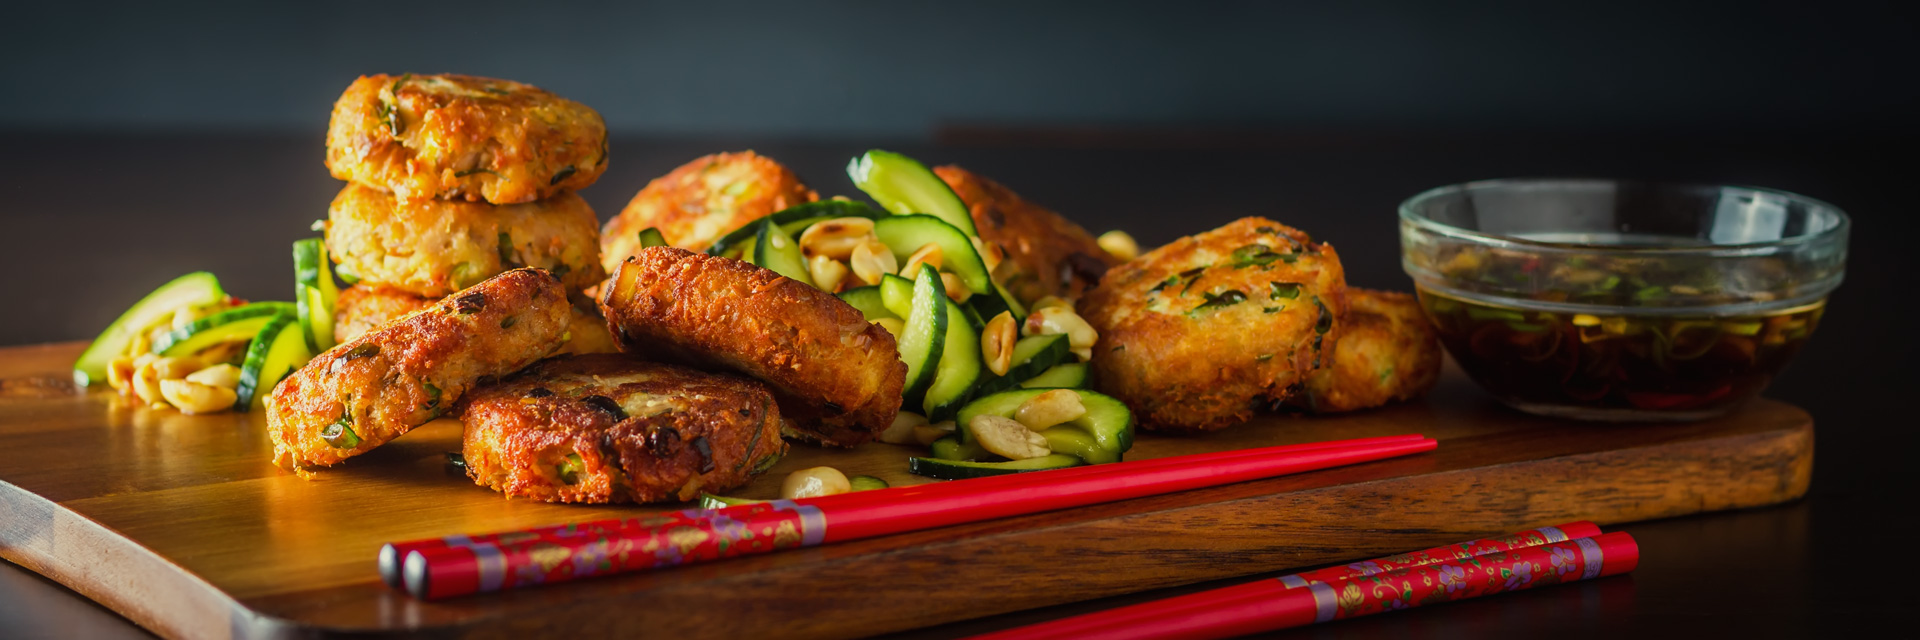 Spicy Tuna Fishcake With Cucumber Salad